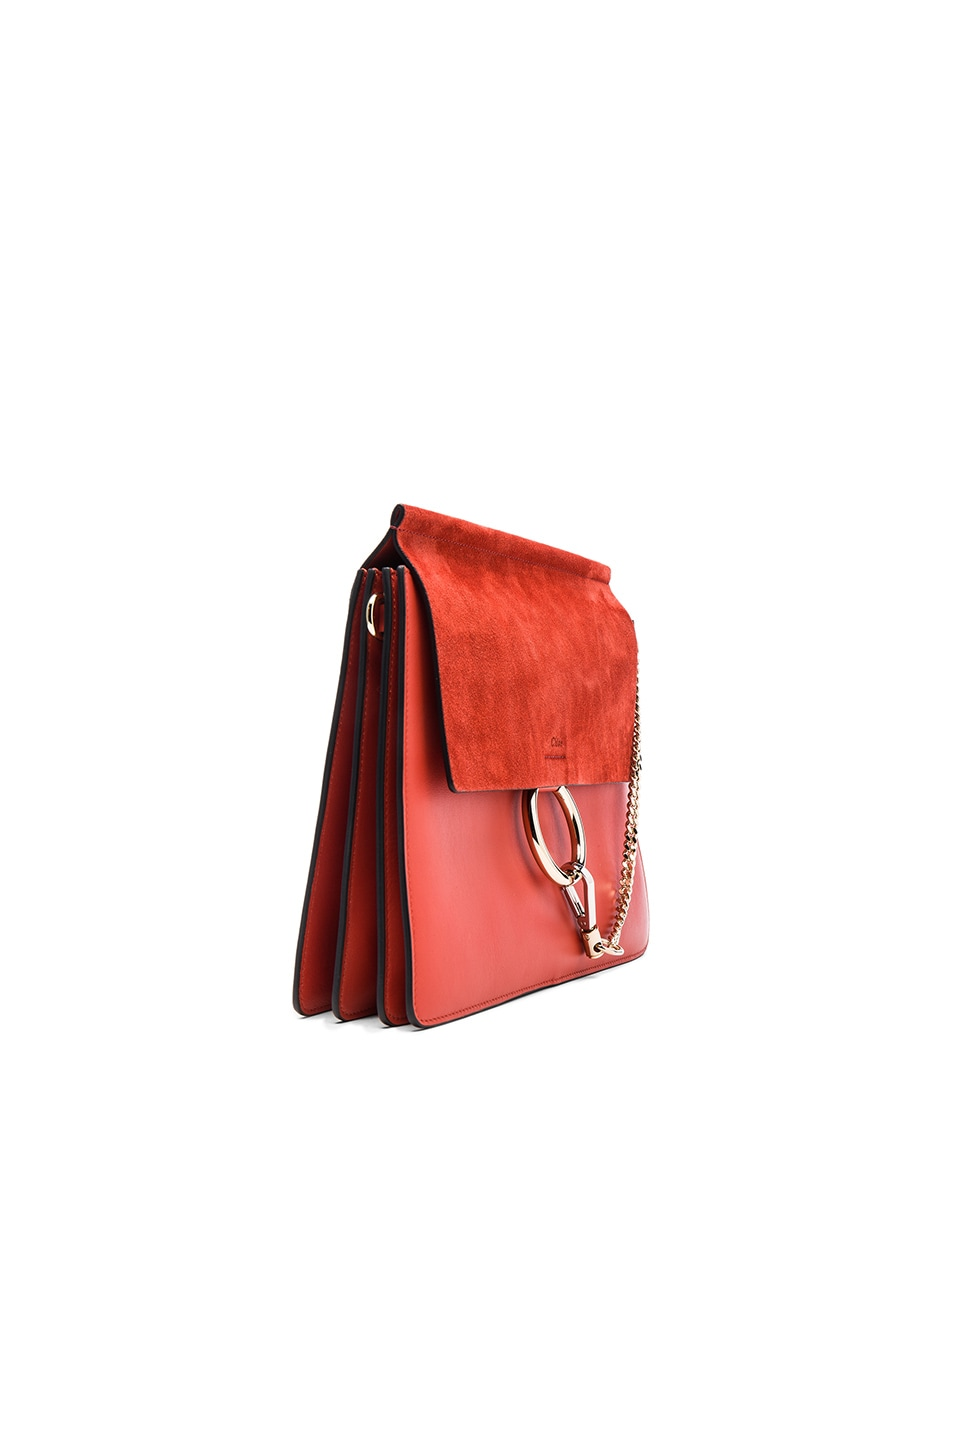 Image 3 of Chloe Medium Leather Faye Shoulder Bag in Sepia Red